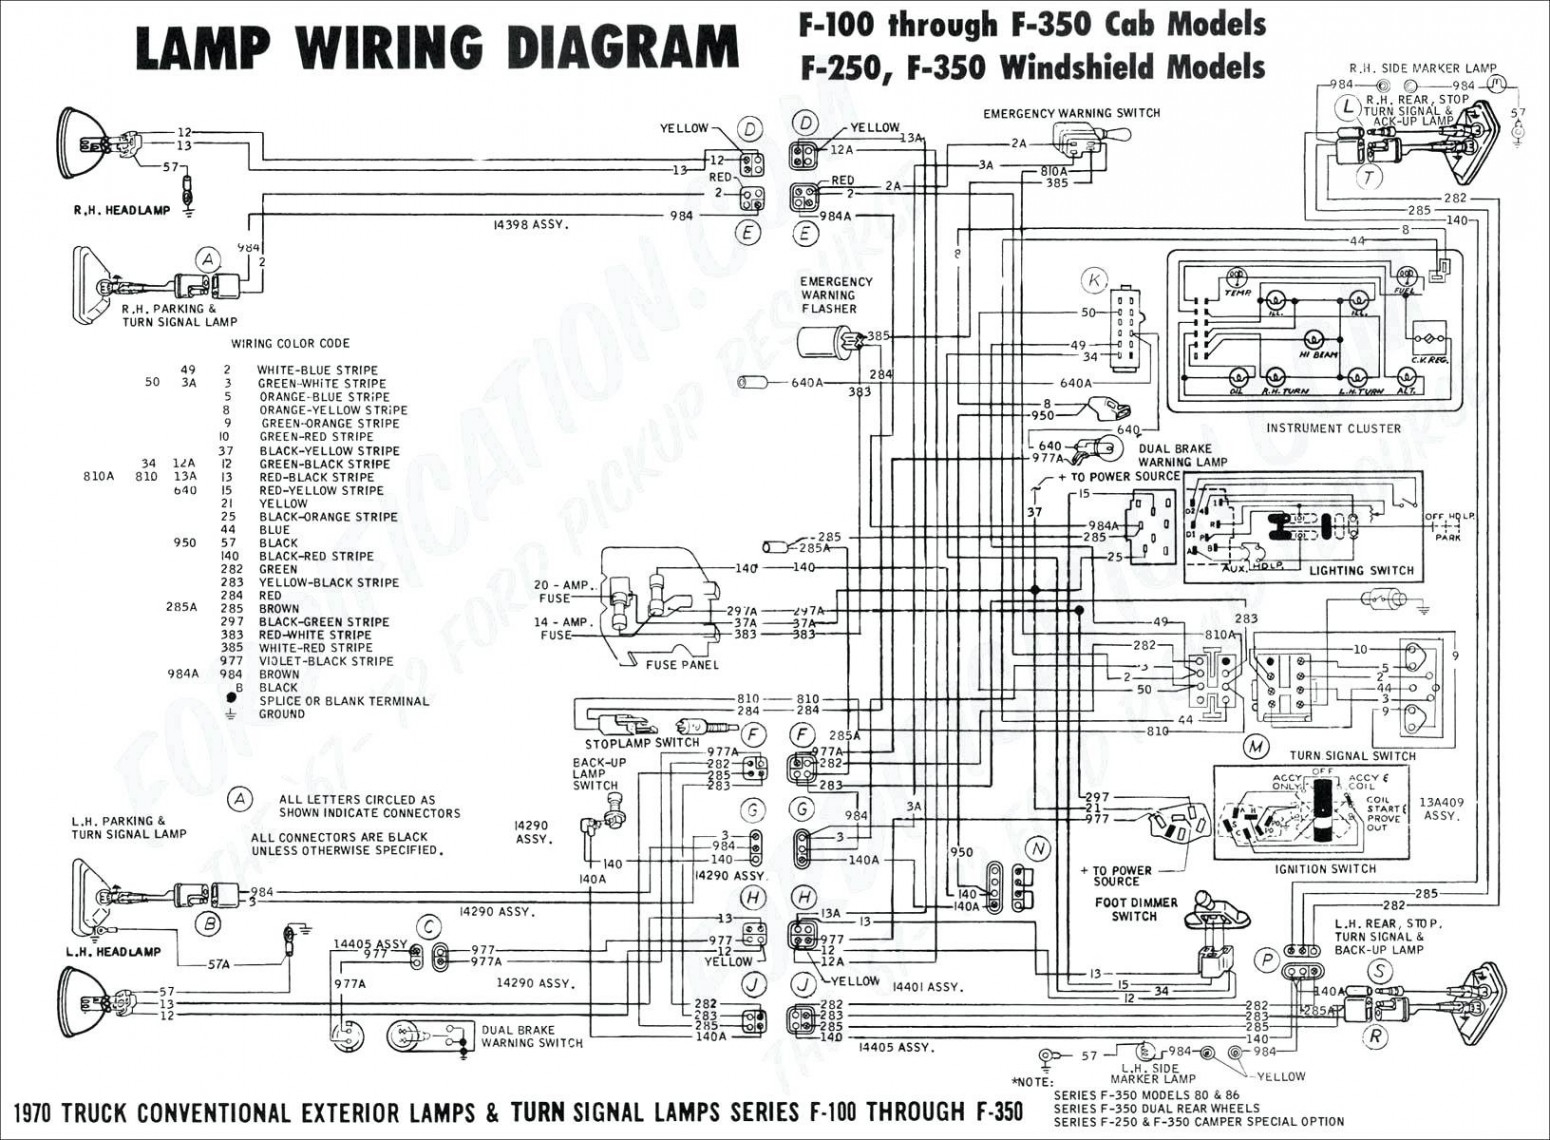 ford f53 motorhome chassis wiring diagram Download-2000 Ford F150 Fuse Diagram – 1999 Ford F53 Motorhome Class A Chassis Wiring Diagram Manual 10-o